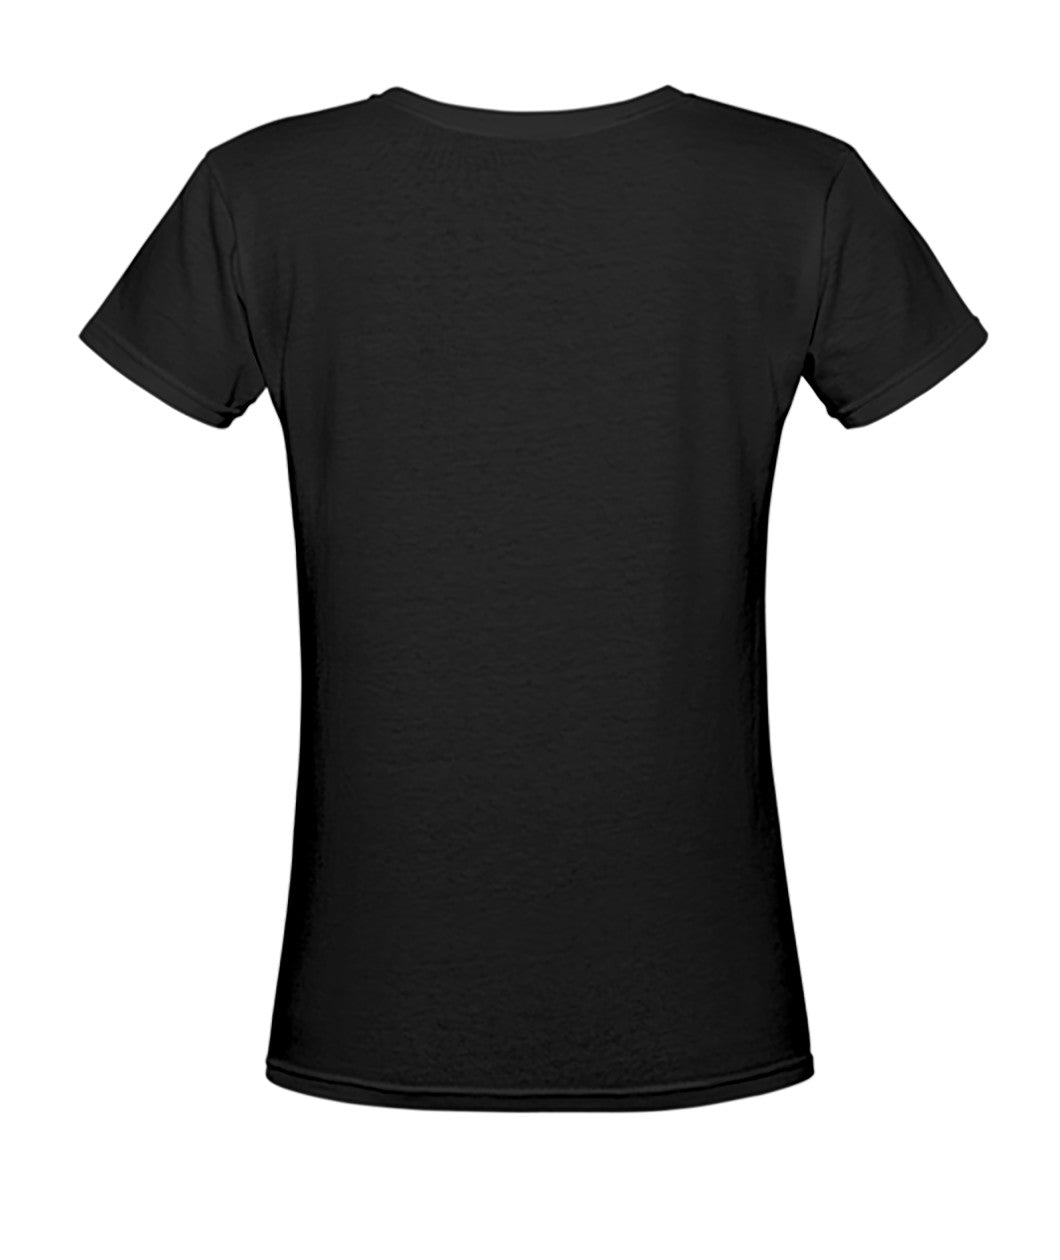 PVU Regular Fit- Womens Cut True To Size Women's V-Neck